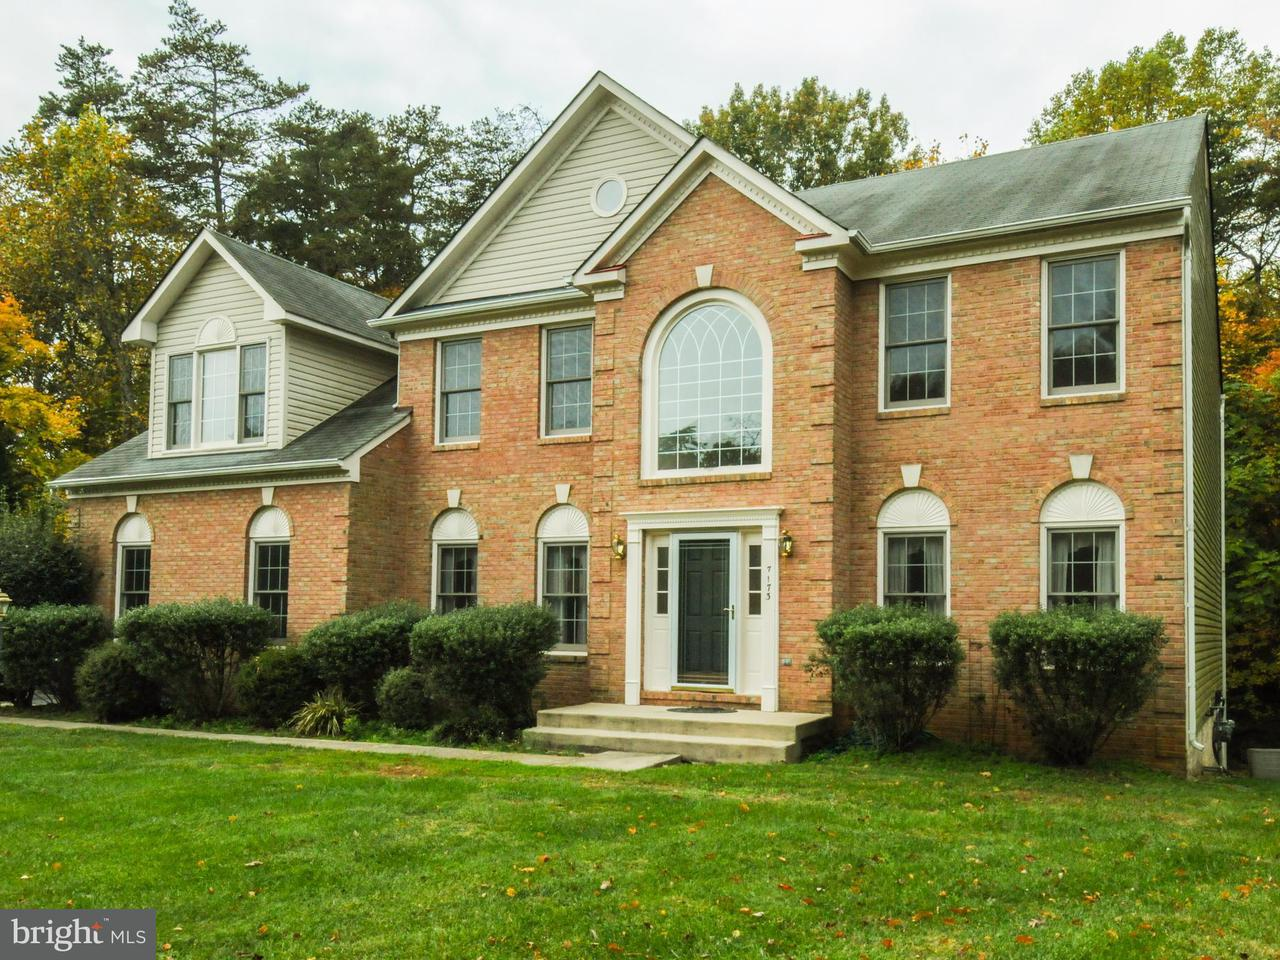 Single Family Home for Sale at 7173 Michala Barrett Court 7173 Michala Barrett Court Manassas, Virginia 20112 United States